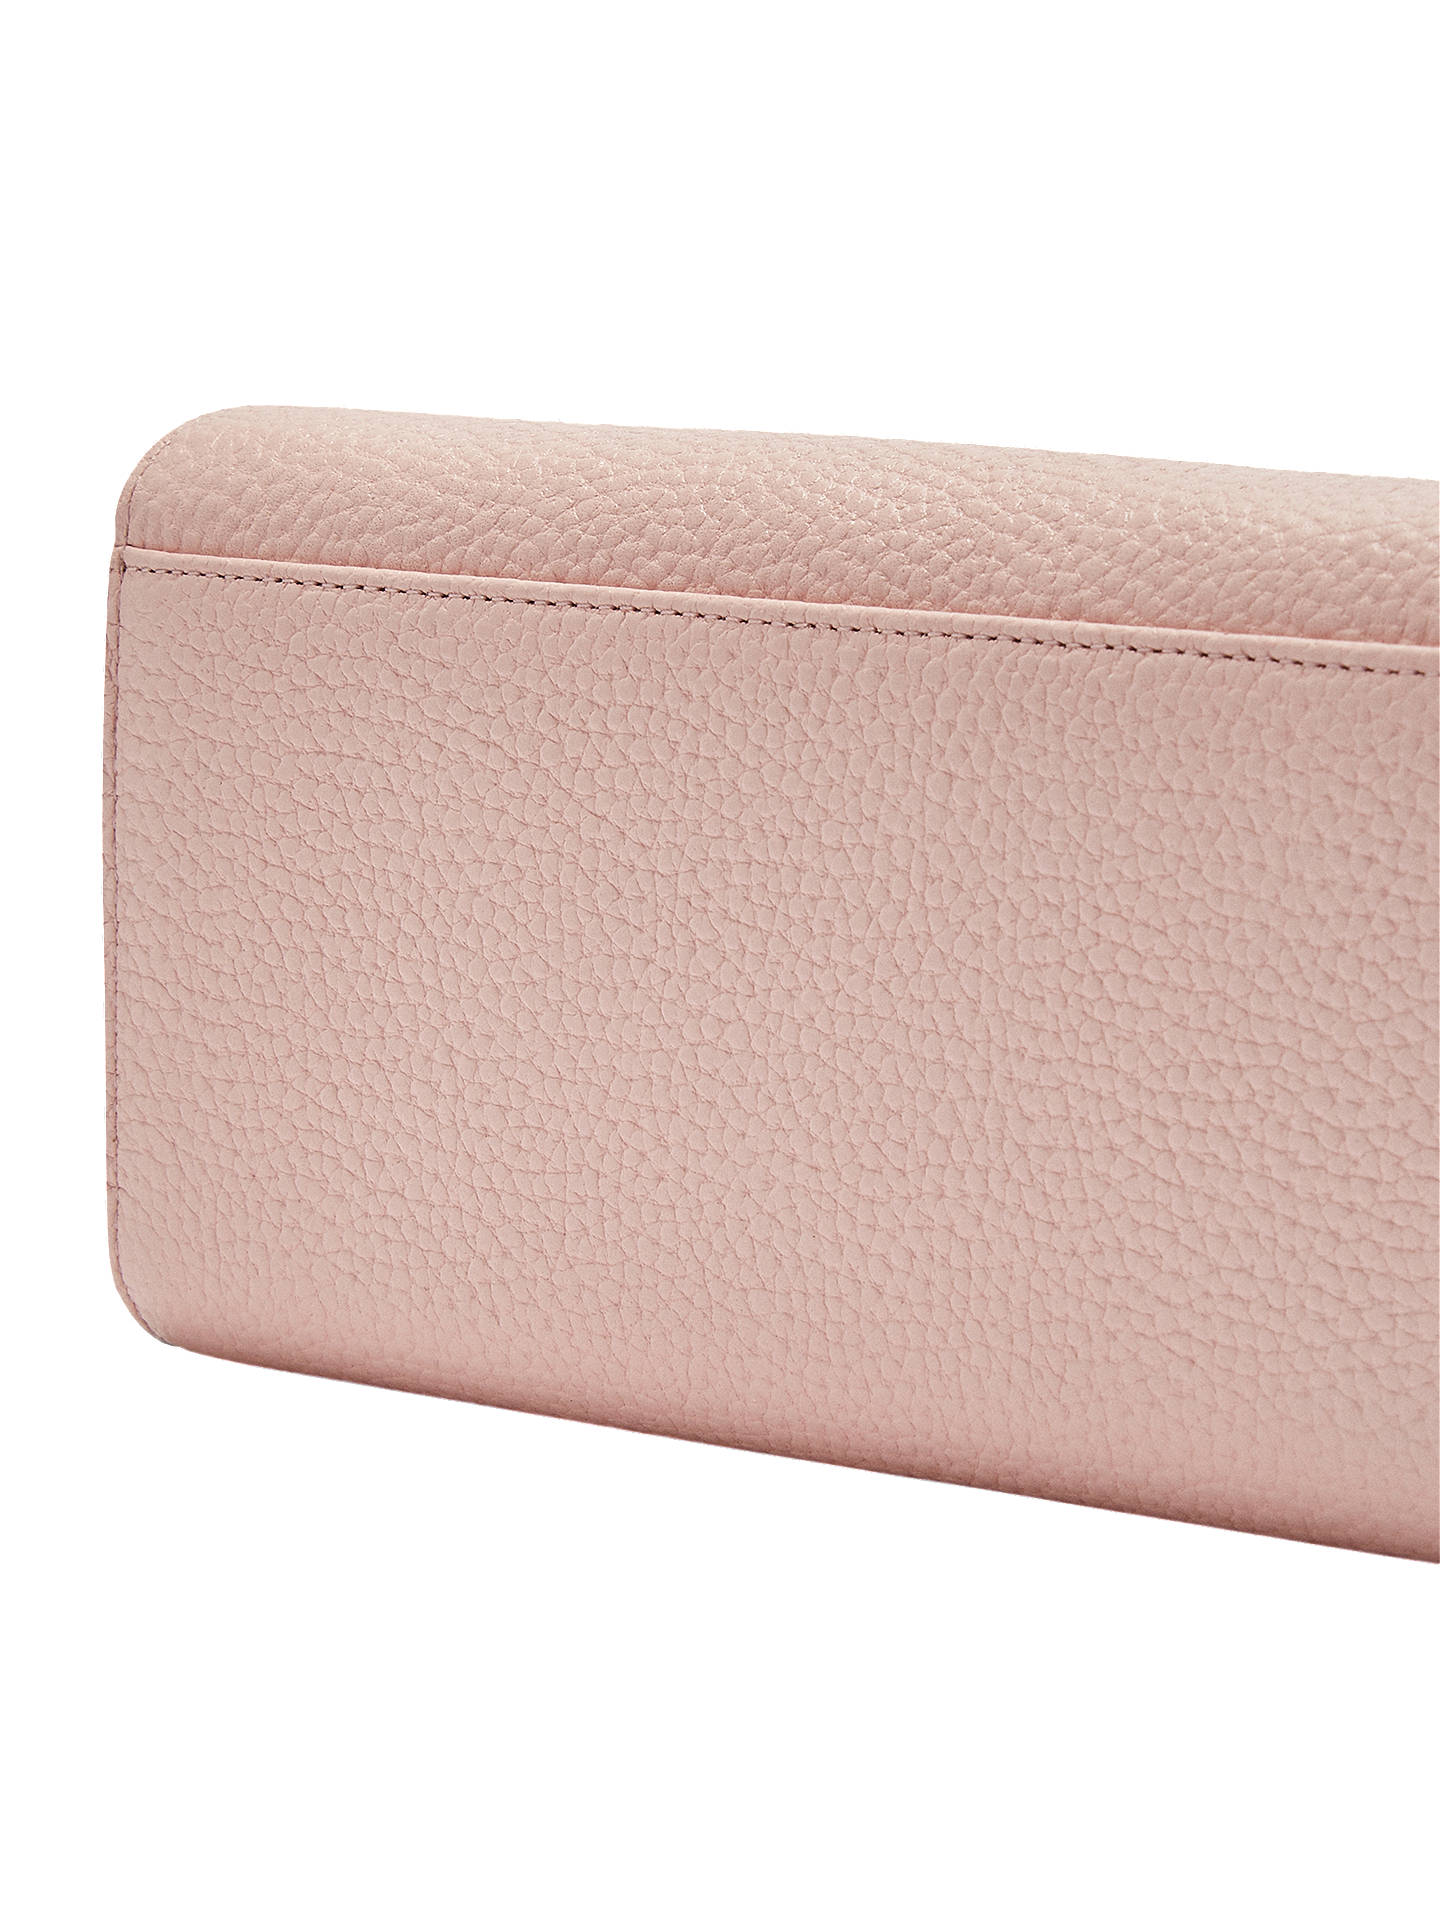 BuyTed Baker Fiola Leather Cross Body Bag, Pink Online at johnlewis.com